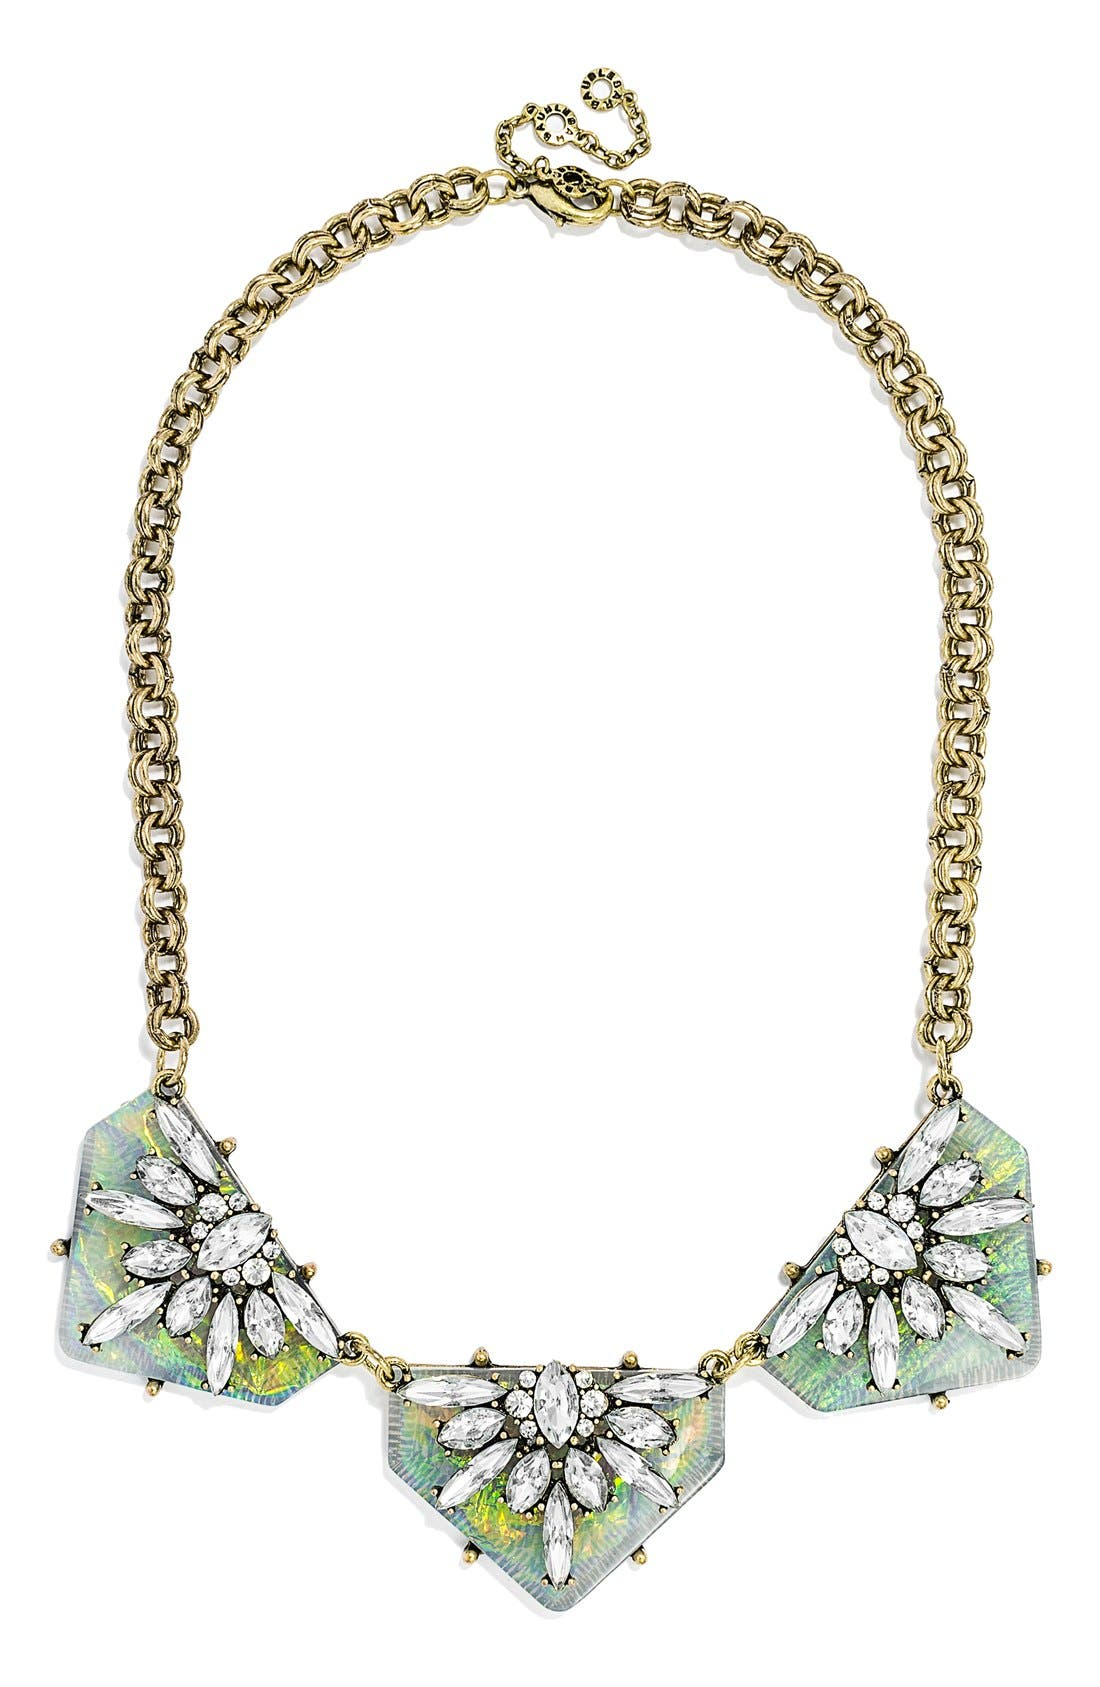 Alternate Image 1 Selected - BaubleBar 'Crystal Prism' Collar Necklace